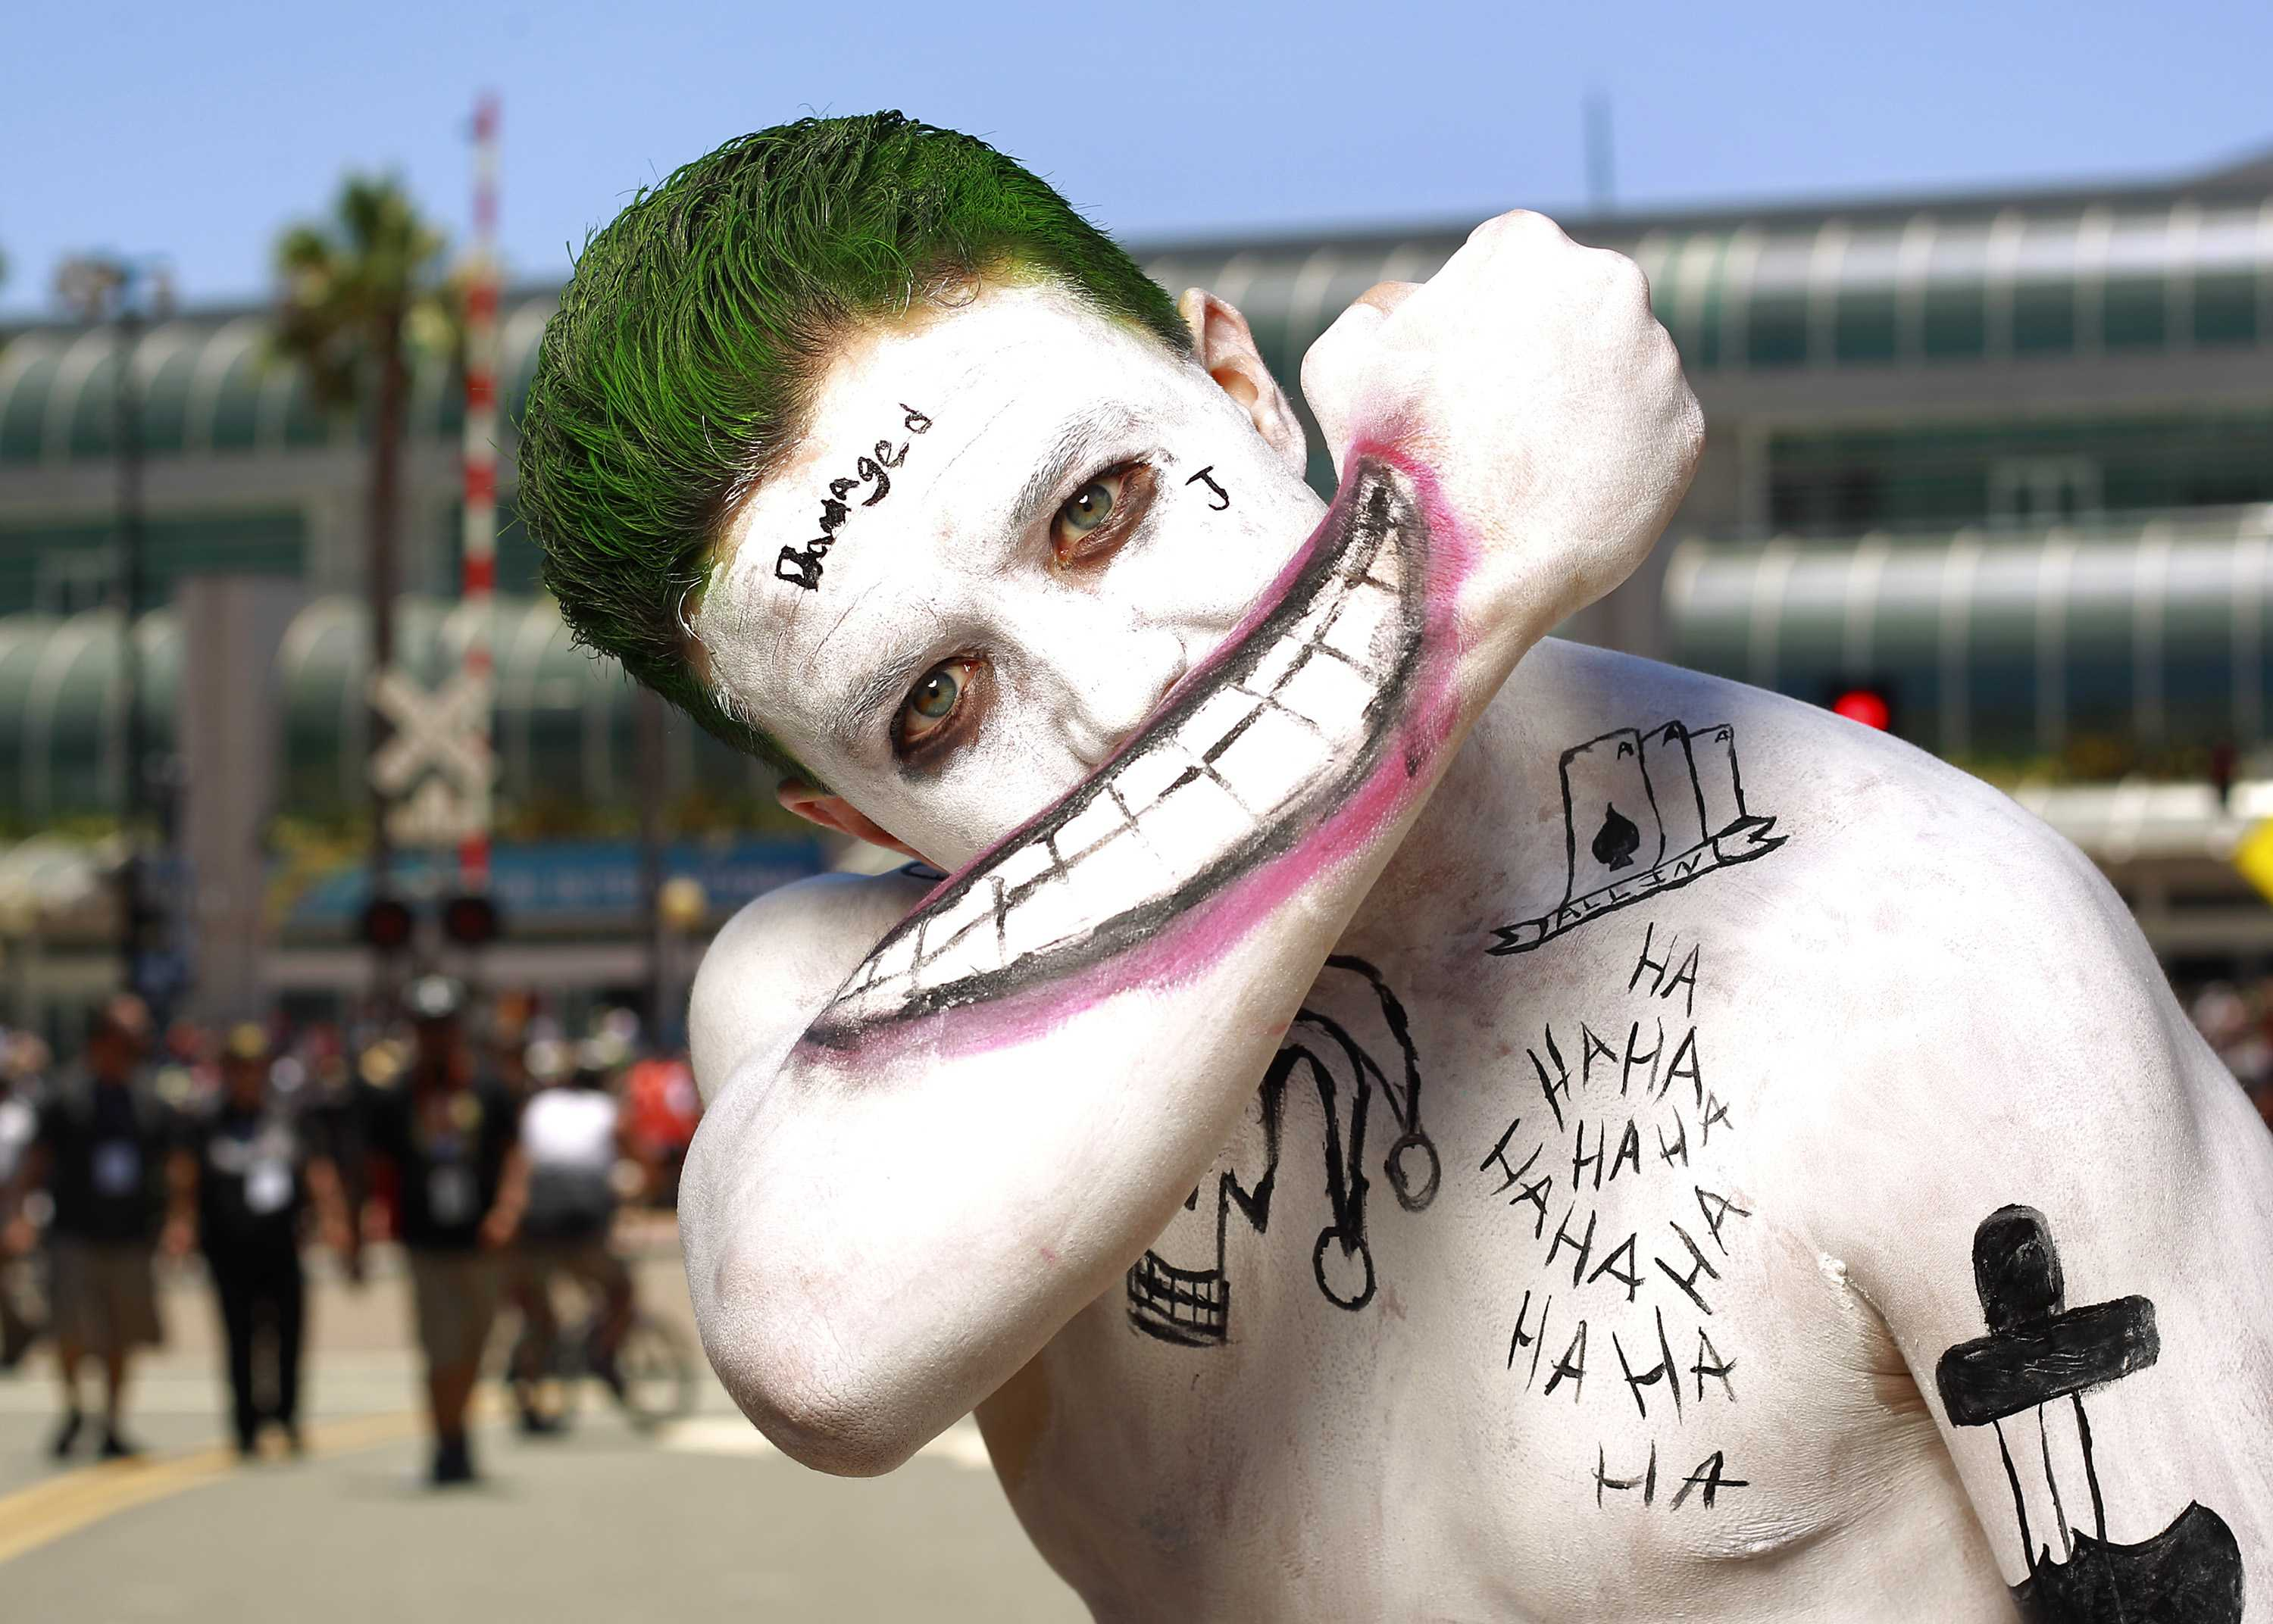 John+Lancaster+is+dressed+as+the+Joker+at+Comic-Con+on+July+21%2C+2016+in+San+Diego%2C+Calif.+%28K.C.+Alfred%2FSan+Diego+Union-Tribune%2FTNS%29